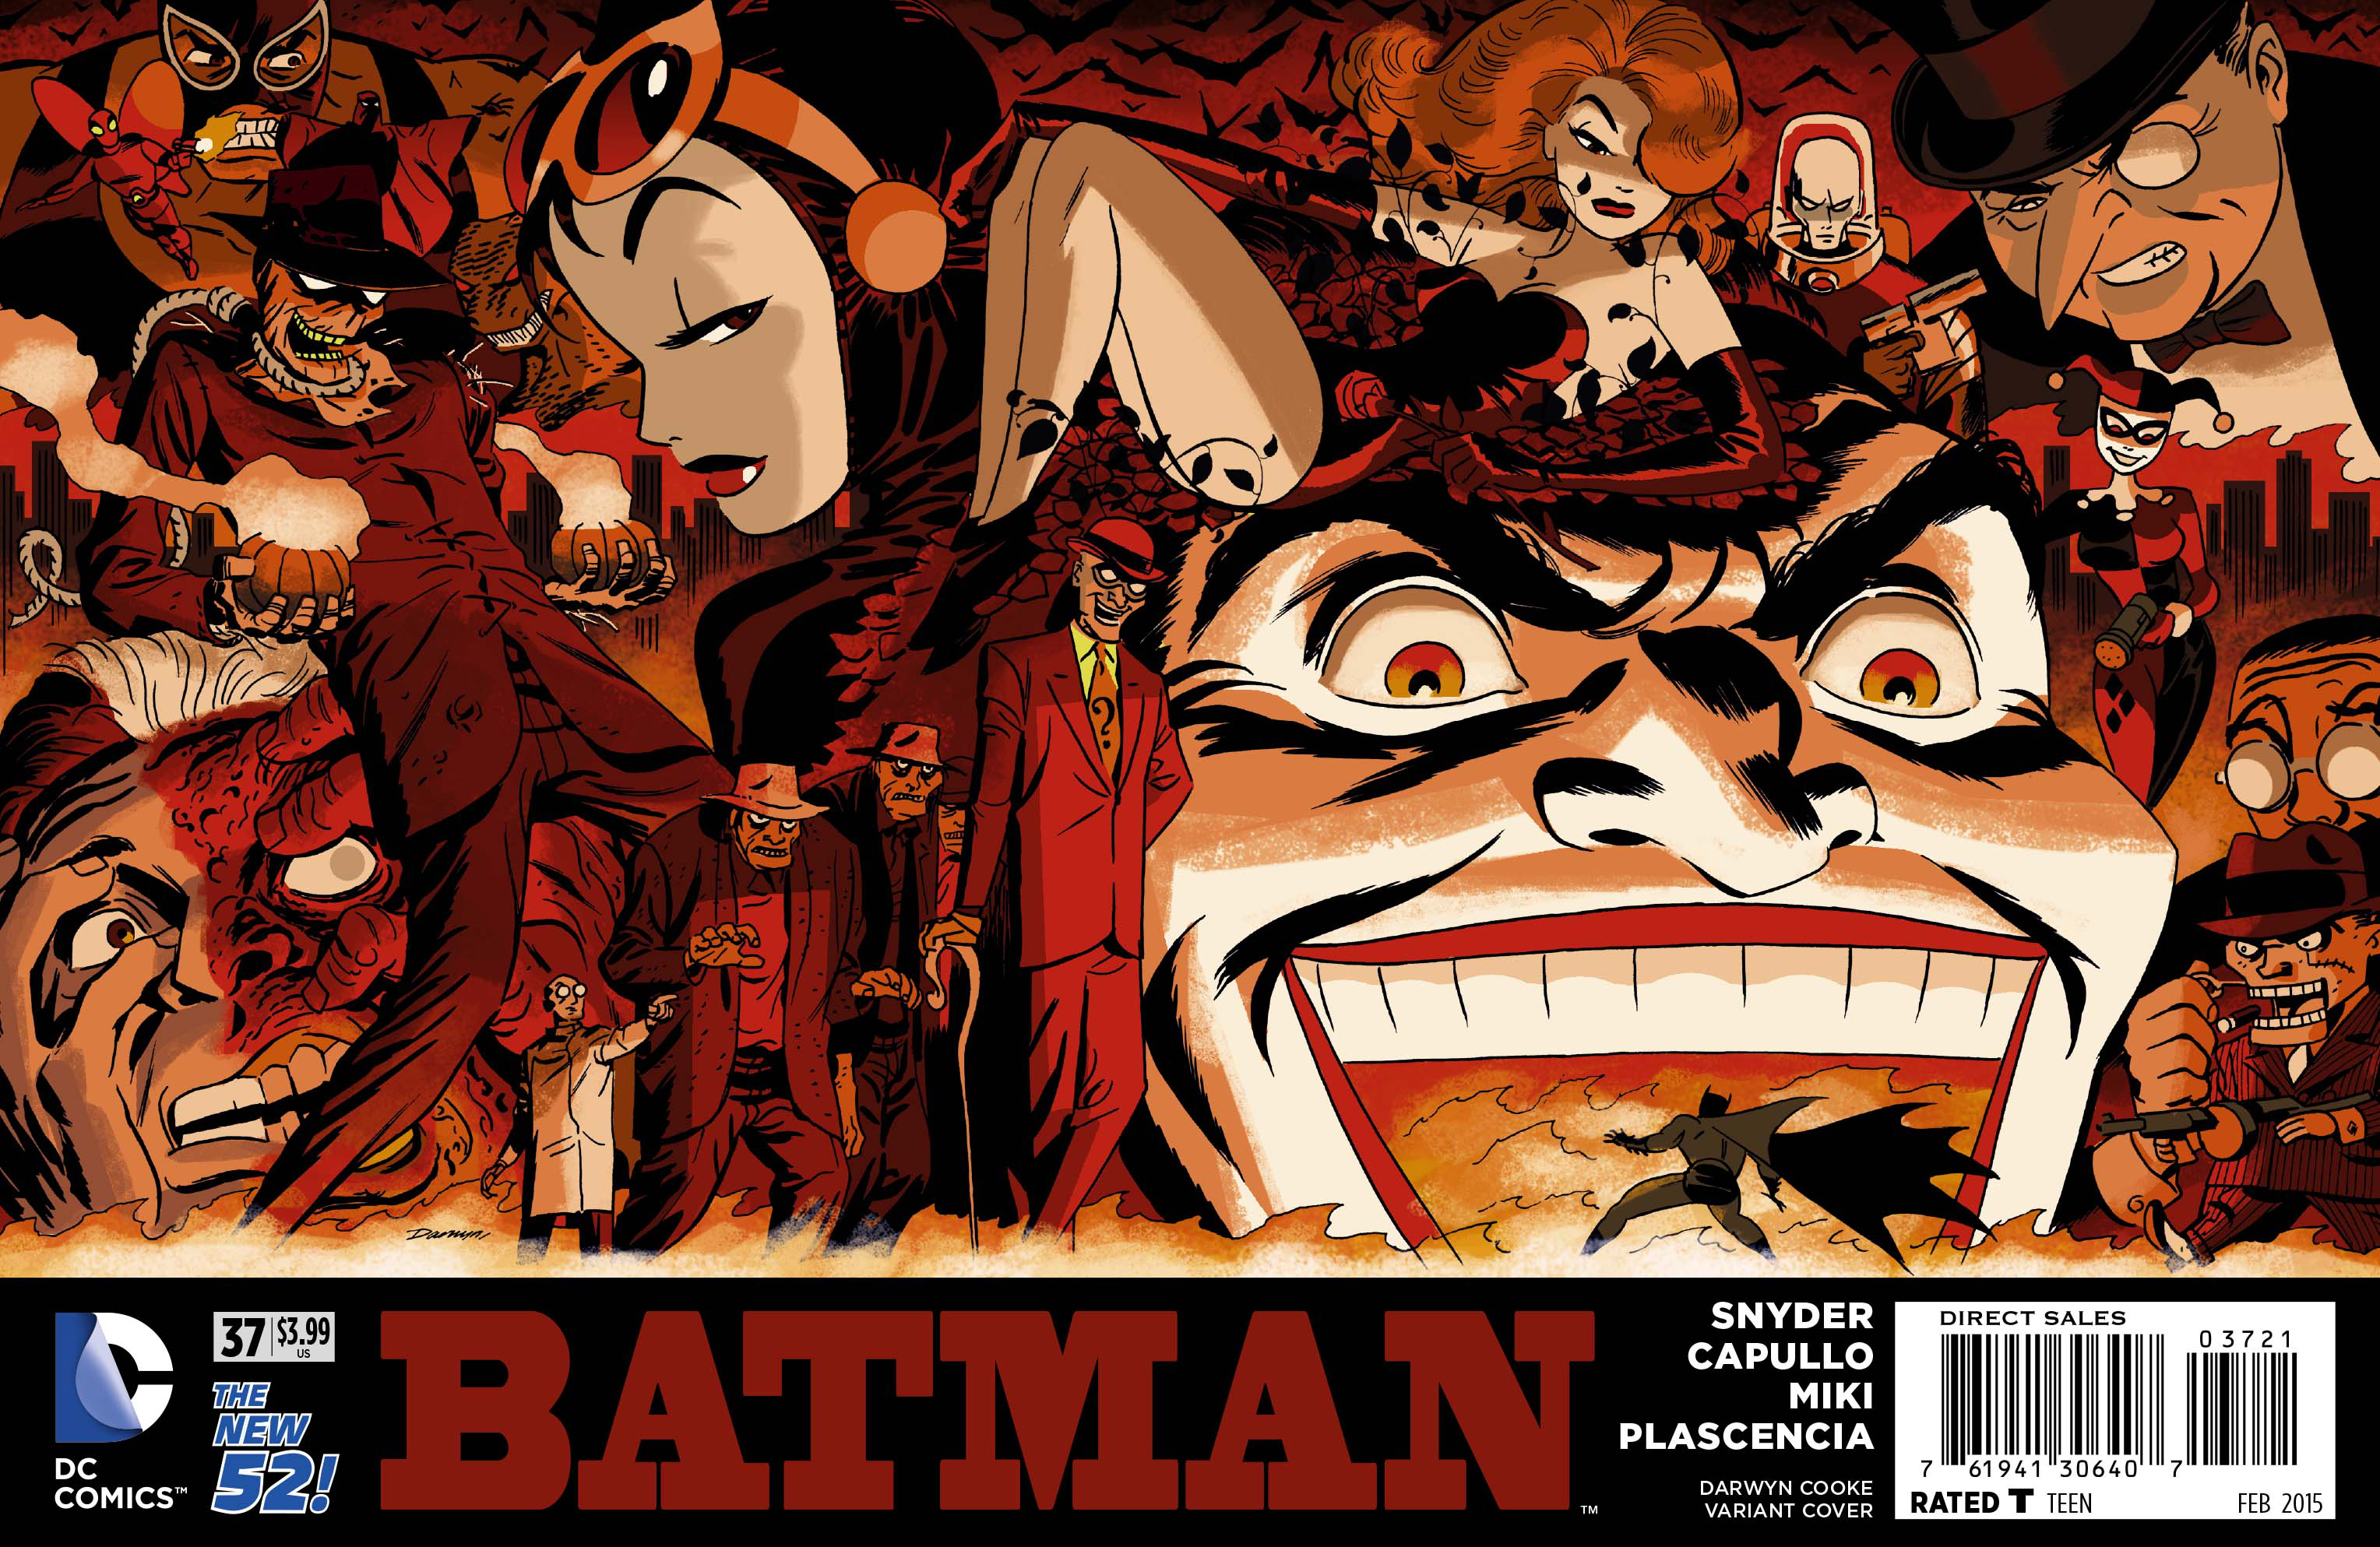 BATMAN #37 DARWYN COOKE VAR ED